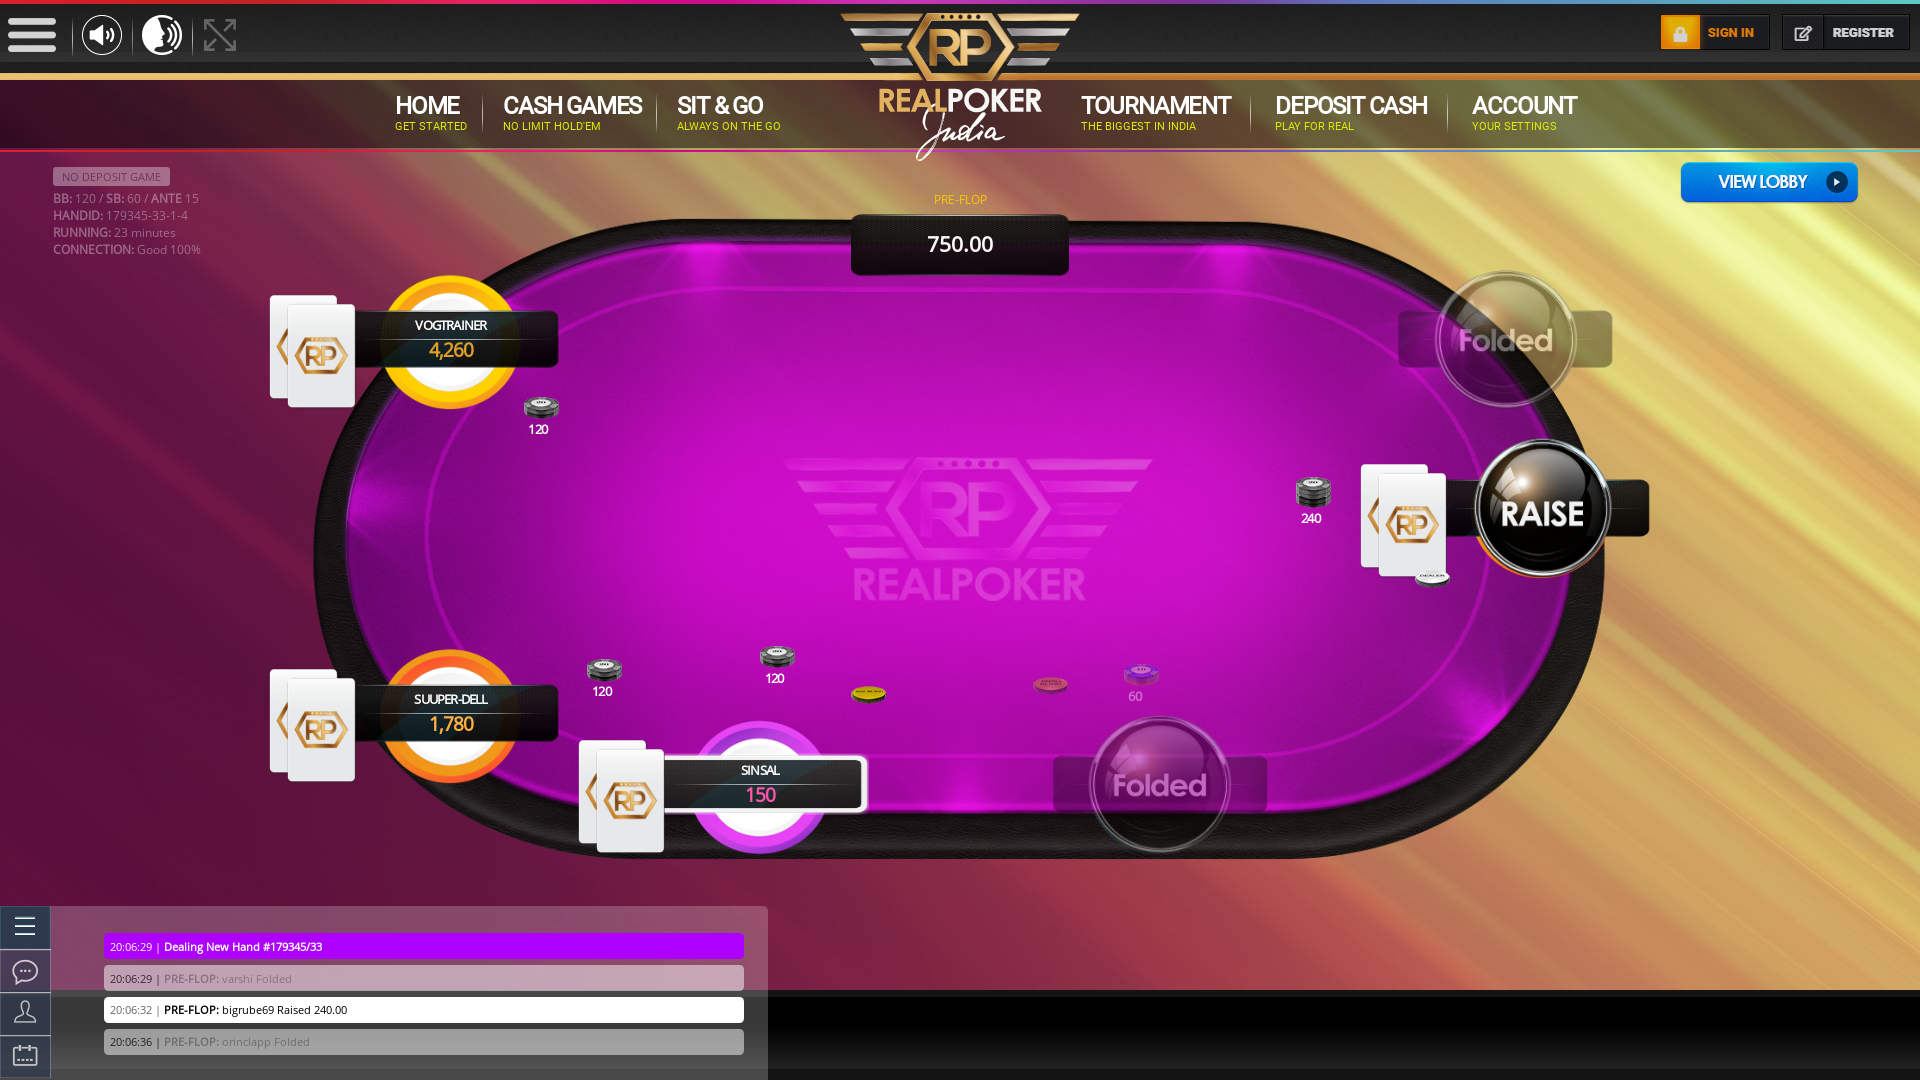 Jubilee Hills, Hyderabad texas holdem poker table on a 10 player table in the 23rd minute of the match